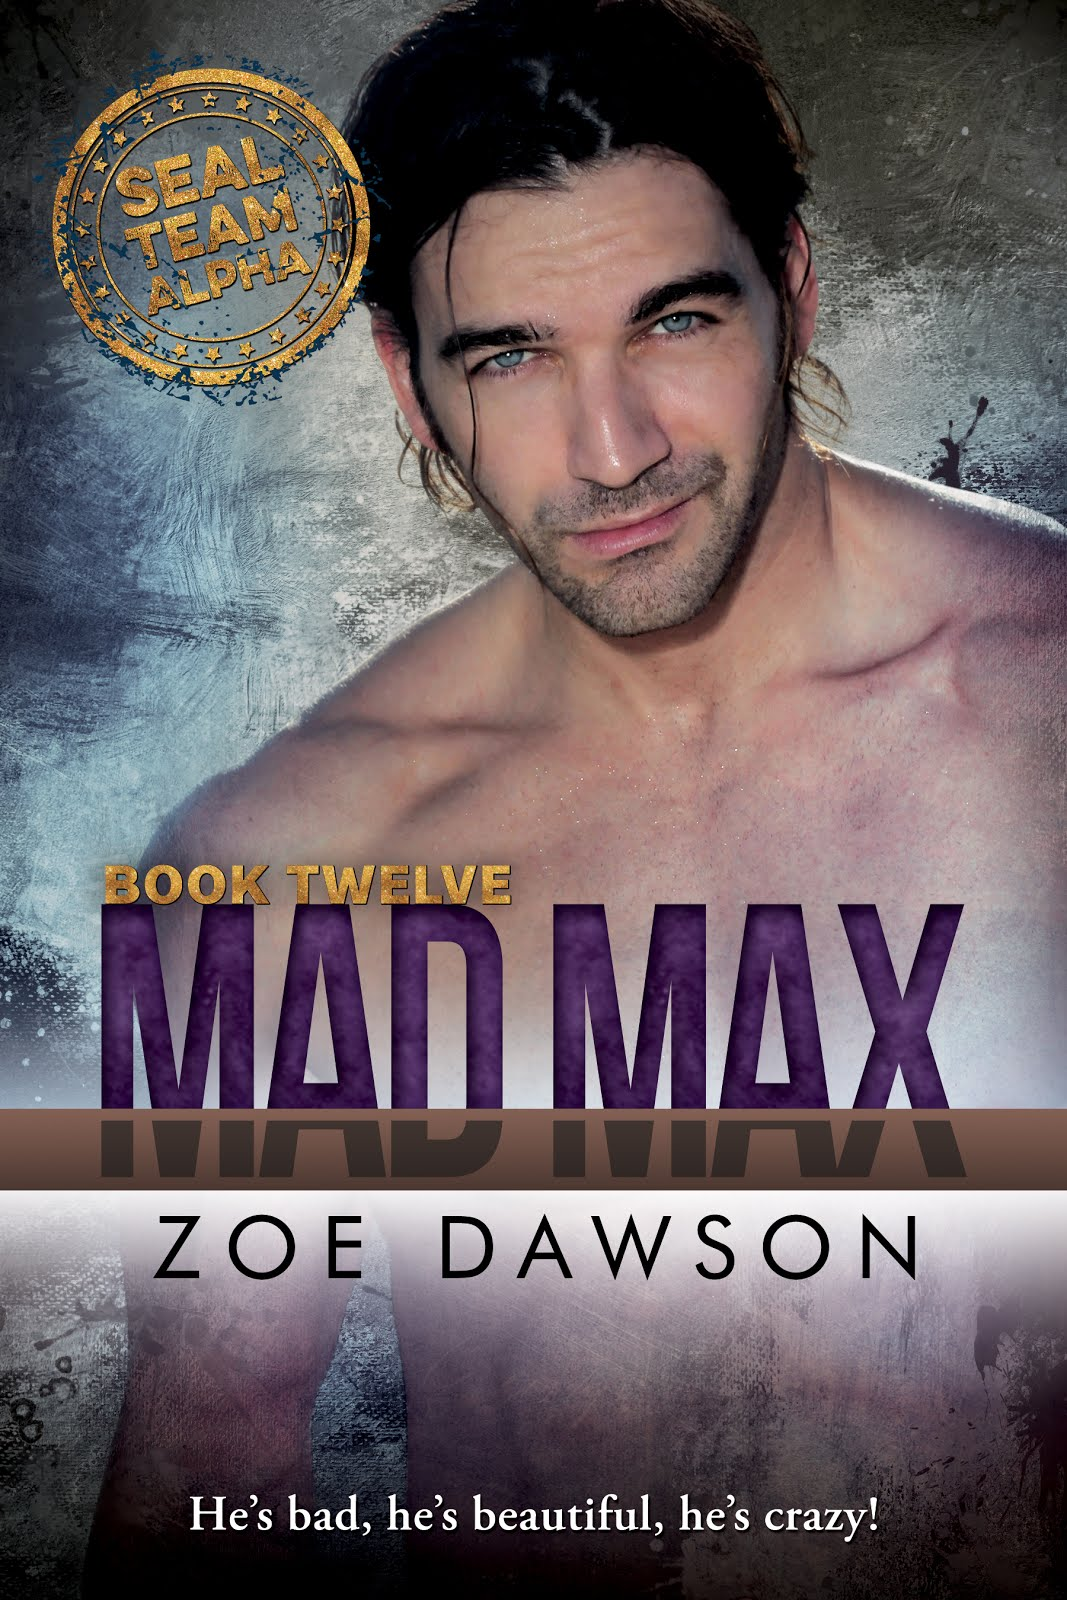 NEWEST SEAL RELEASE: MAD MAX